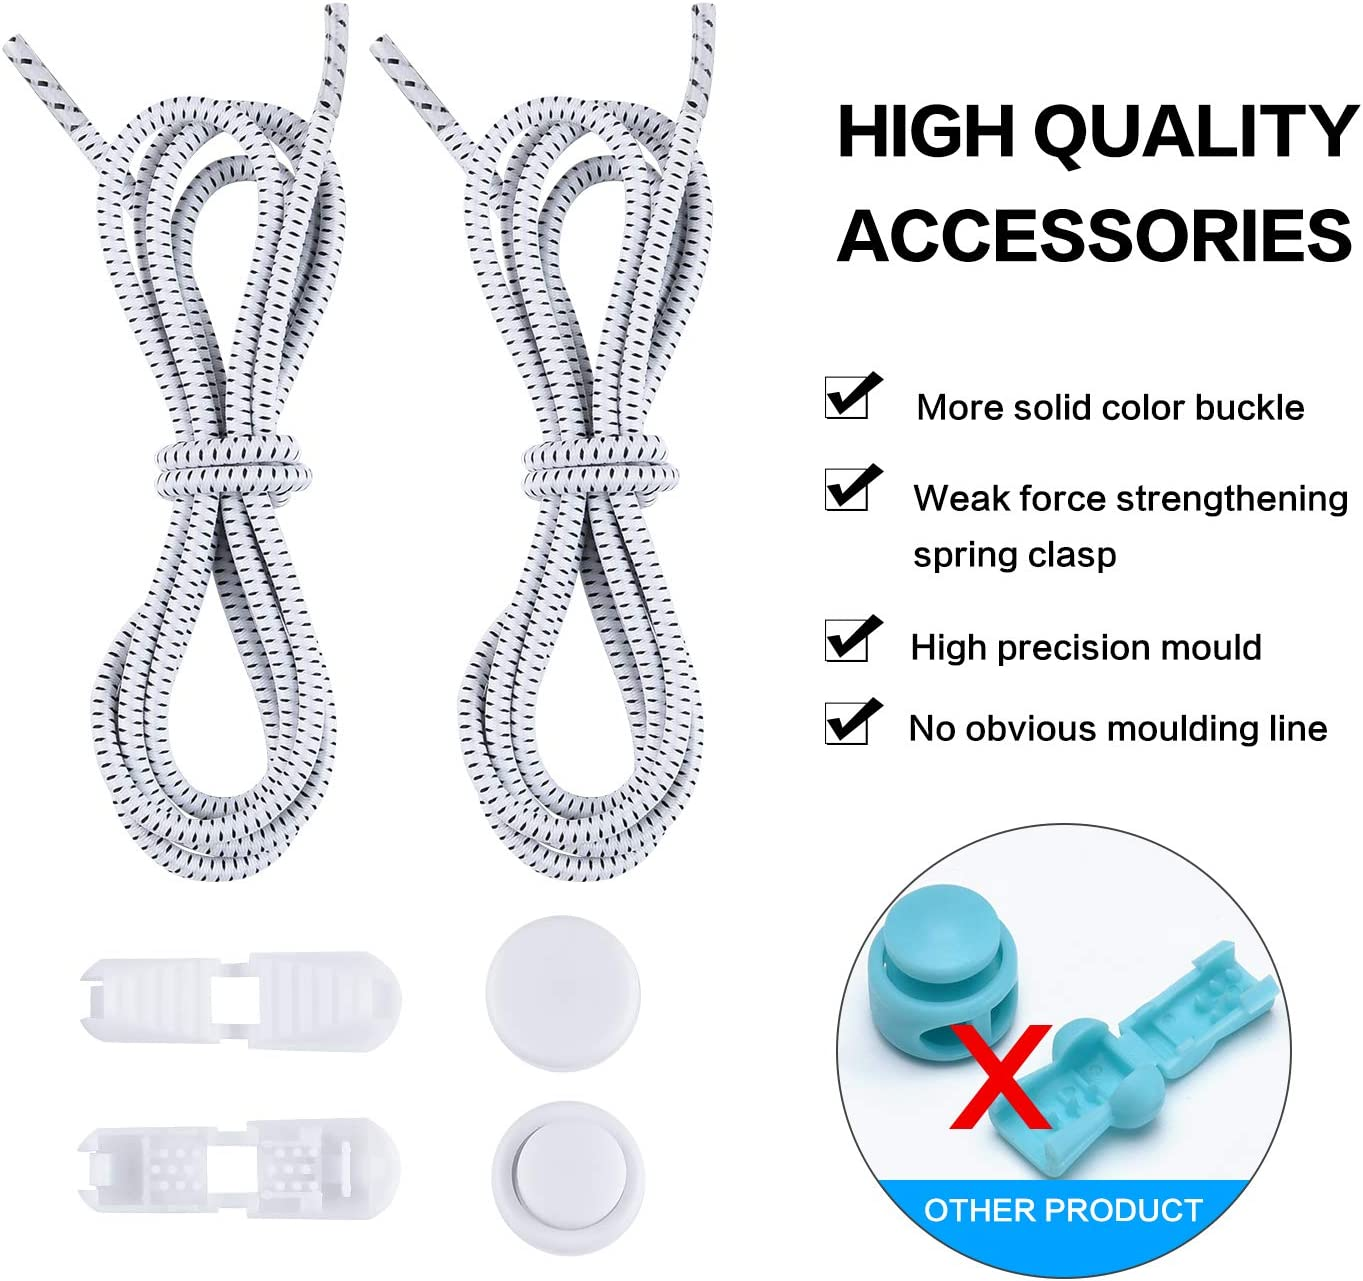 L LEIWEK Elastic Shoe Laces for Kids and Adults Adjustable Tieless Rubber Shoe Laces Strings for Sneakers Boots Board and Casual Shoes No tie Shoelaces with Lock Device